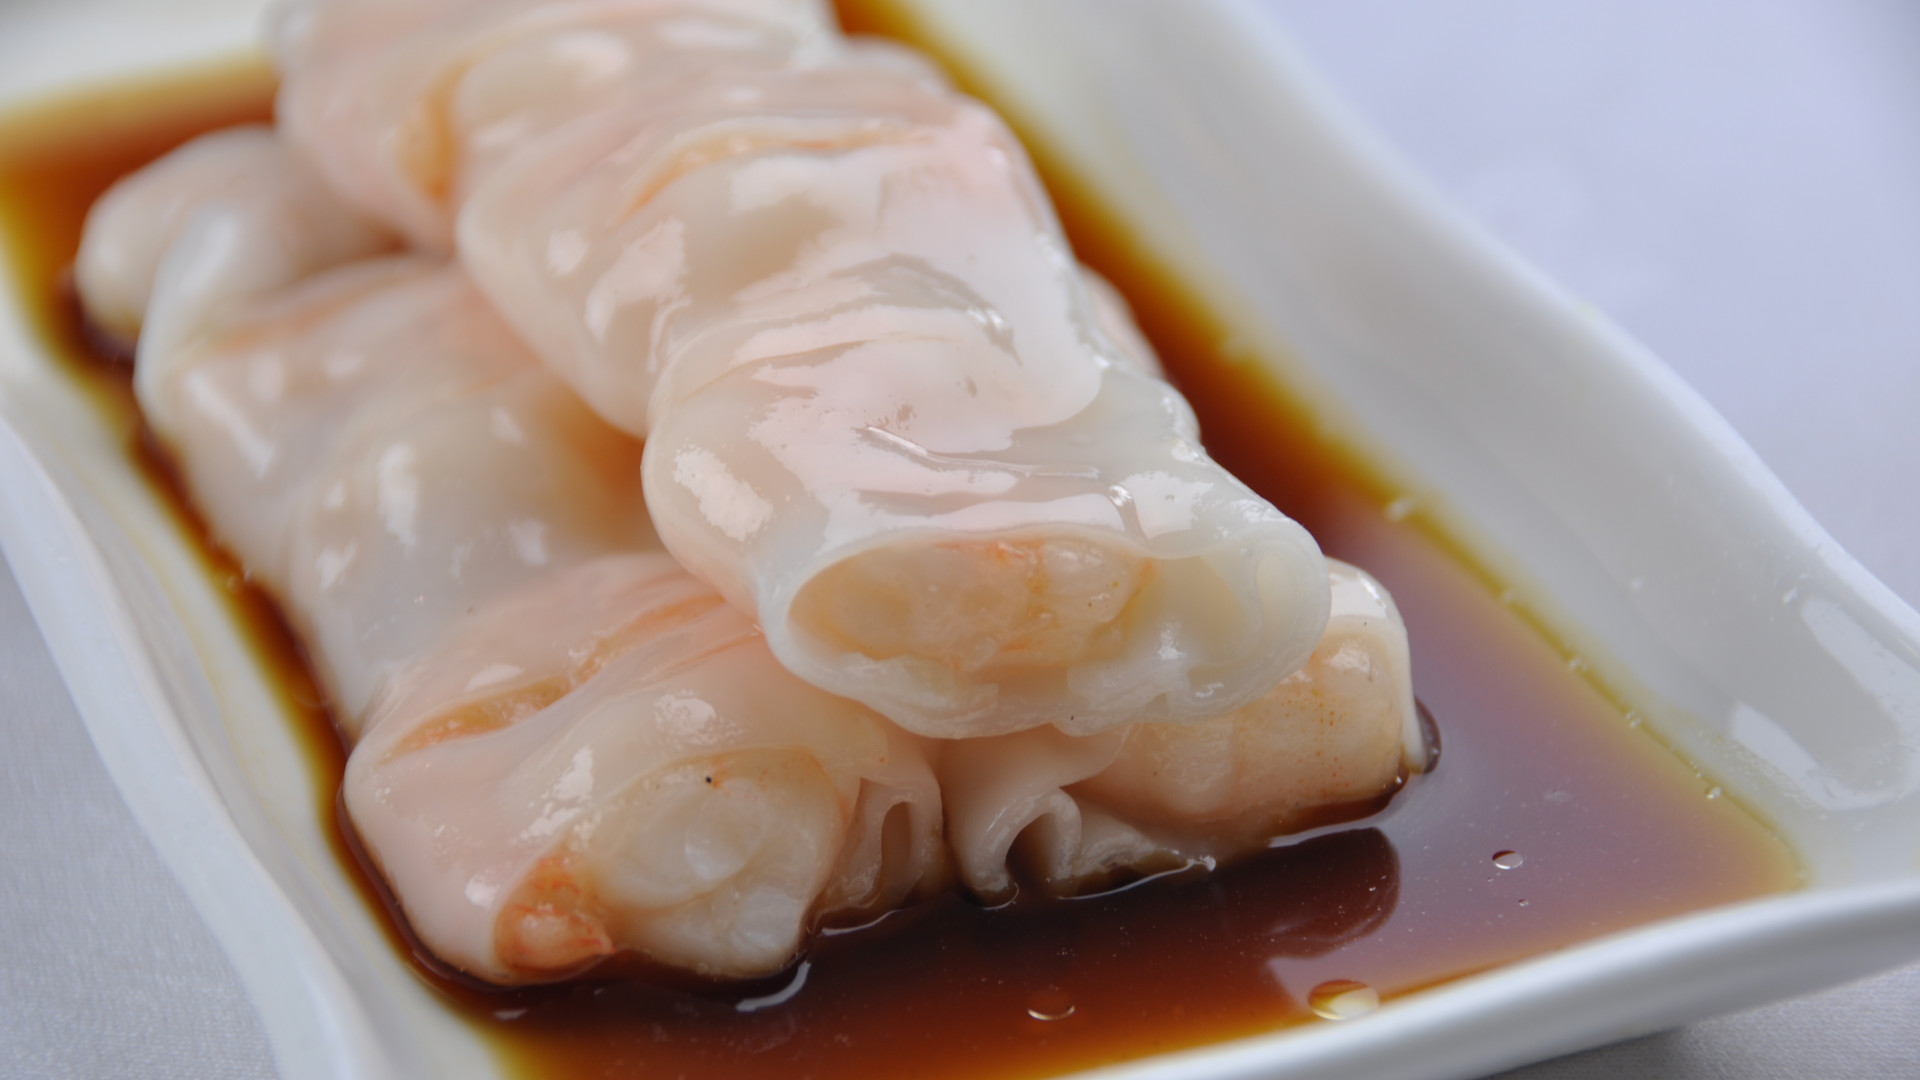 Cheung fun on Royal China's brunch menu